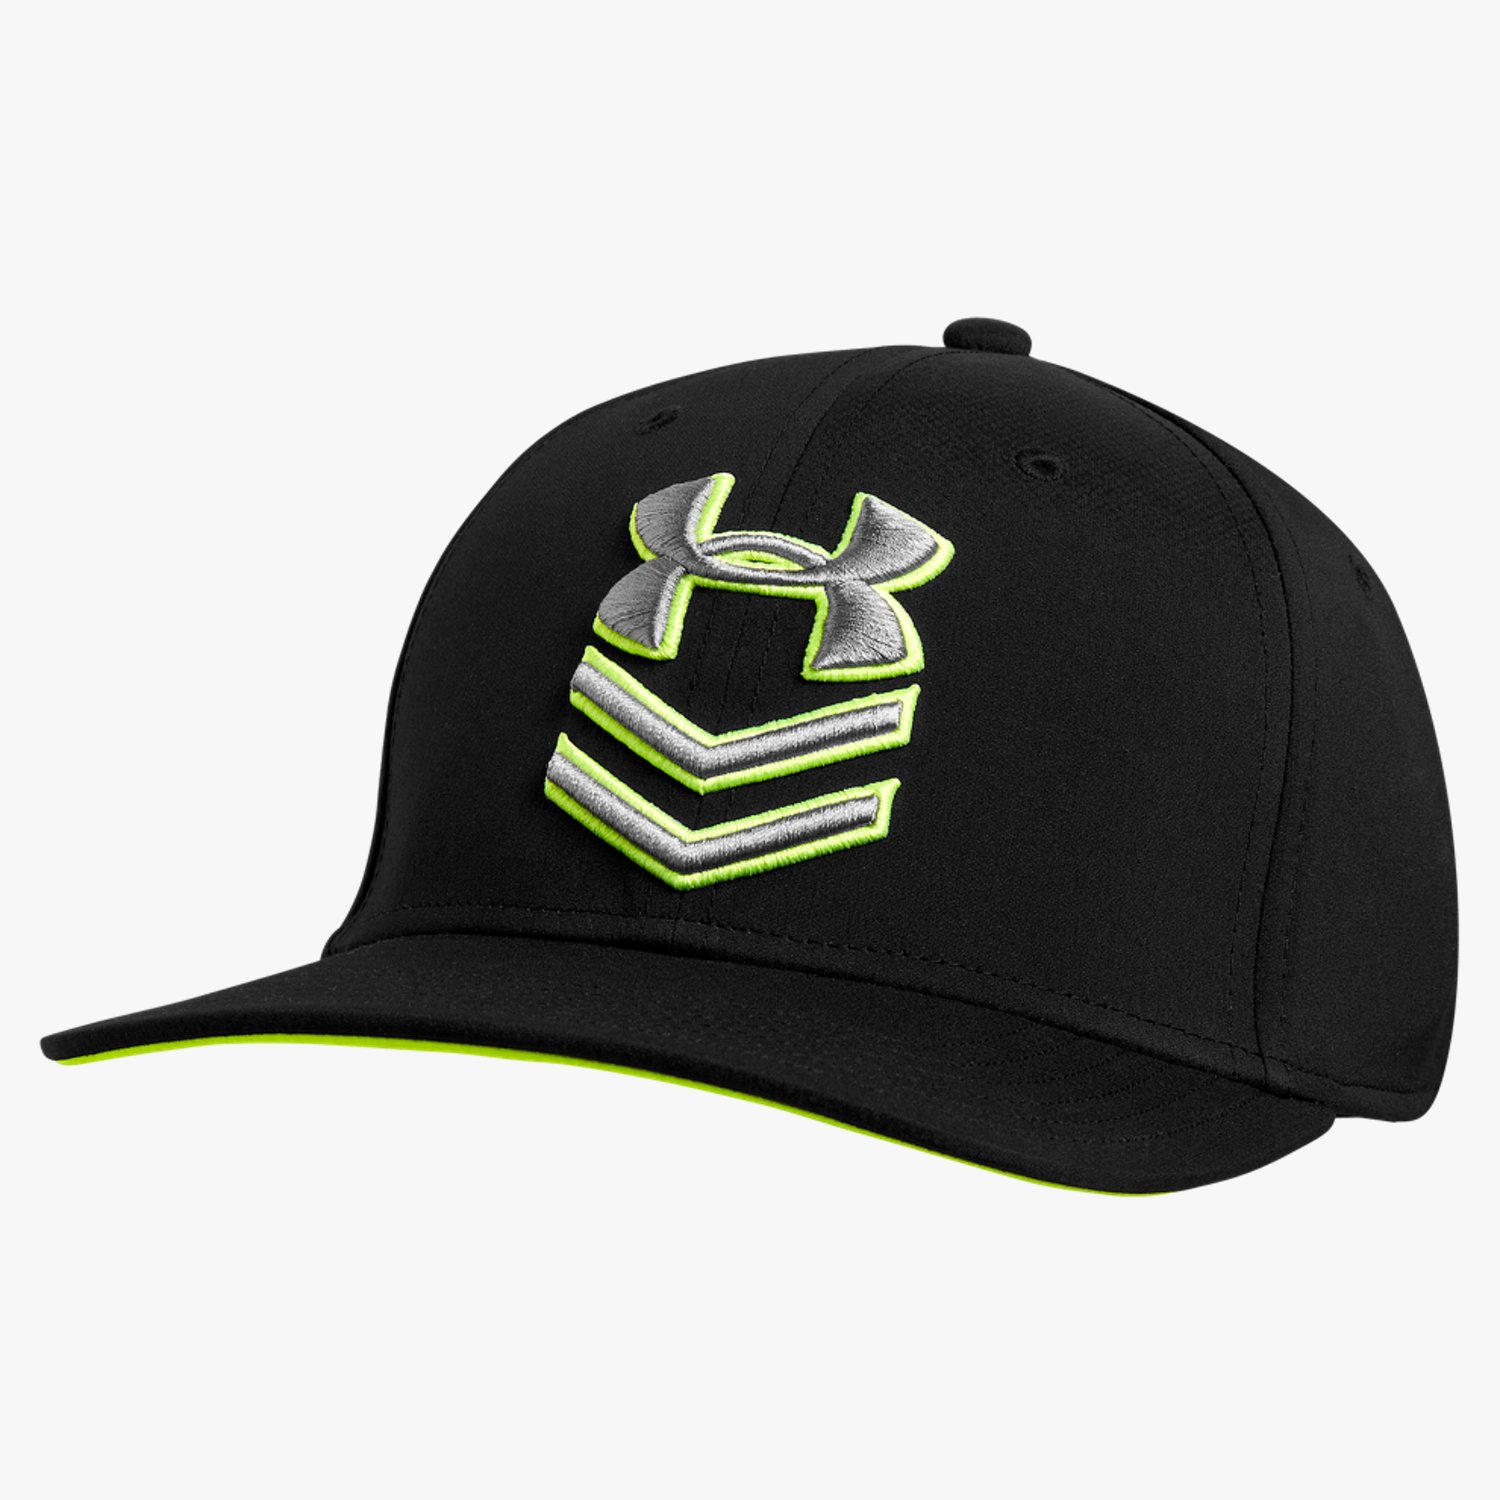 258297d0dc7 Under Armour UA Undeniable Stretch Fit Cap Black High-Vis Yellow Graphite-